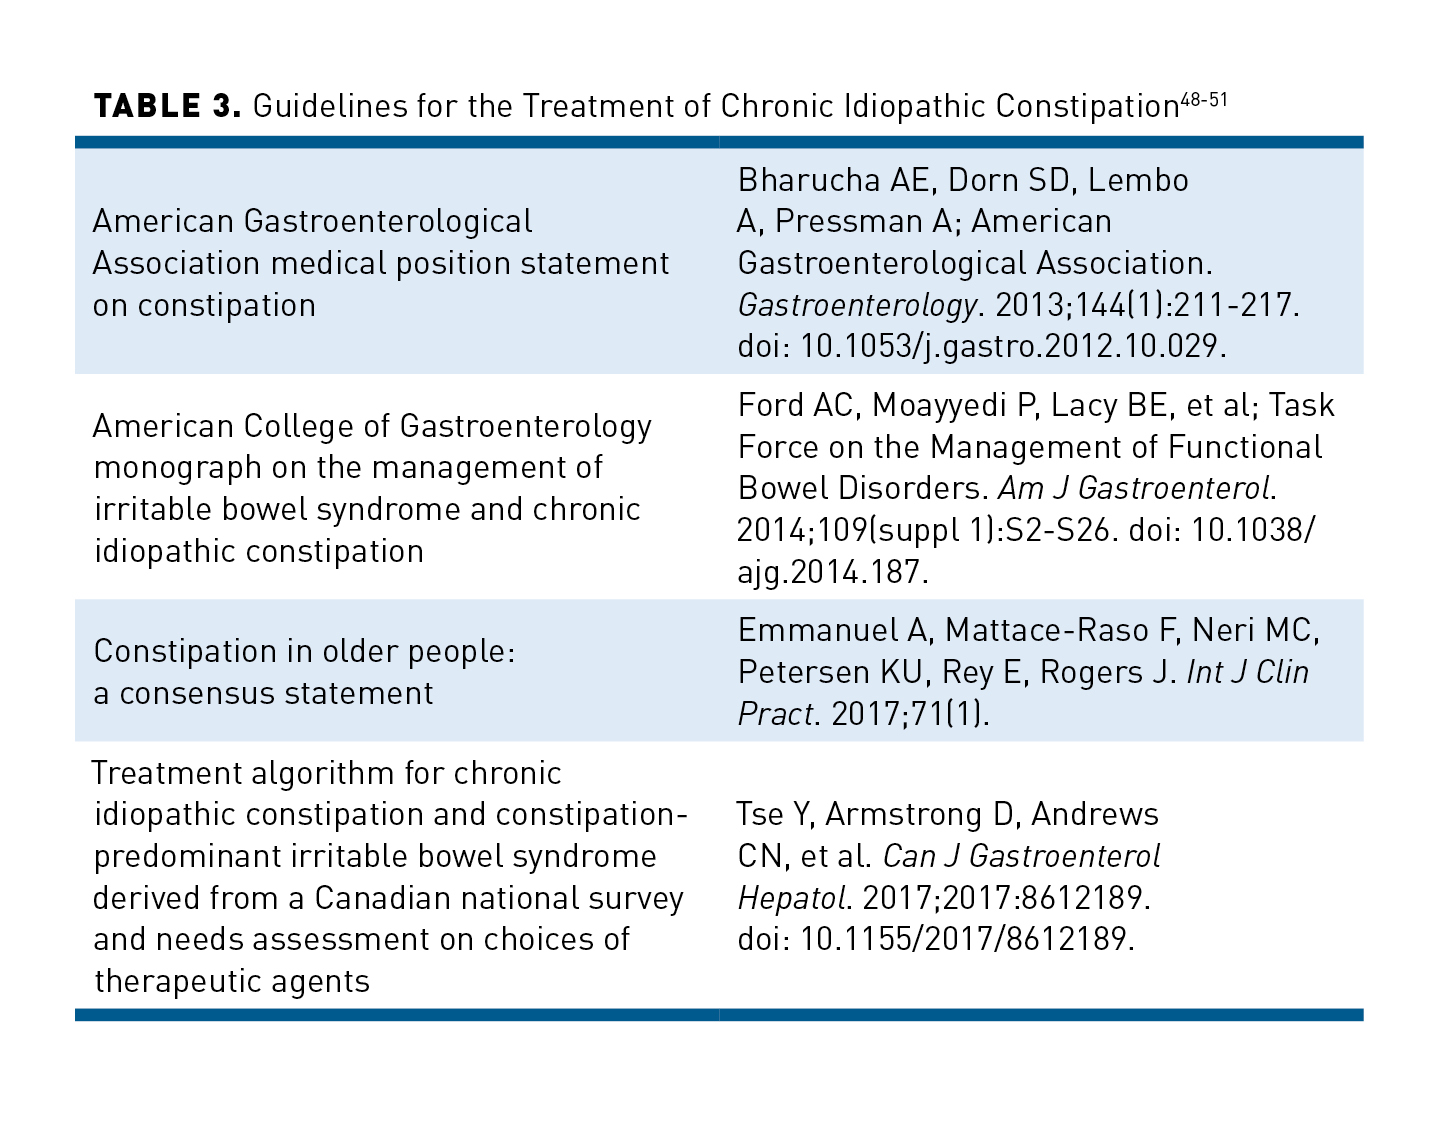 Managing Costs and Care for Chronic Idiopathic Constipation